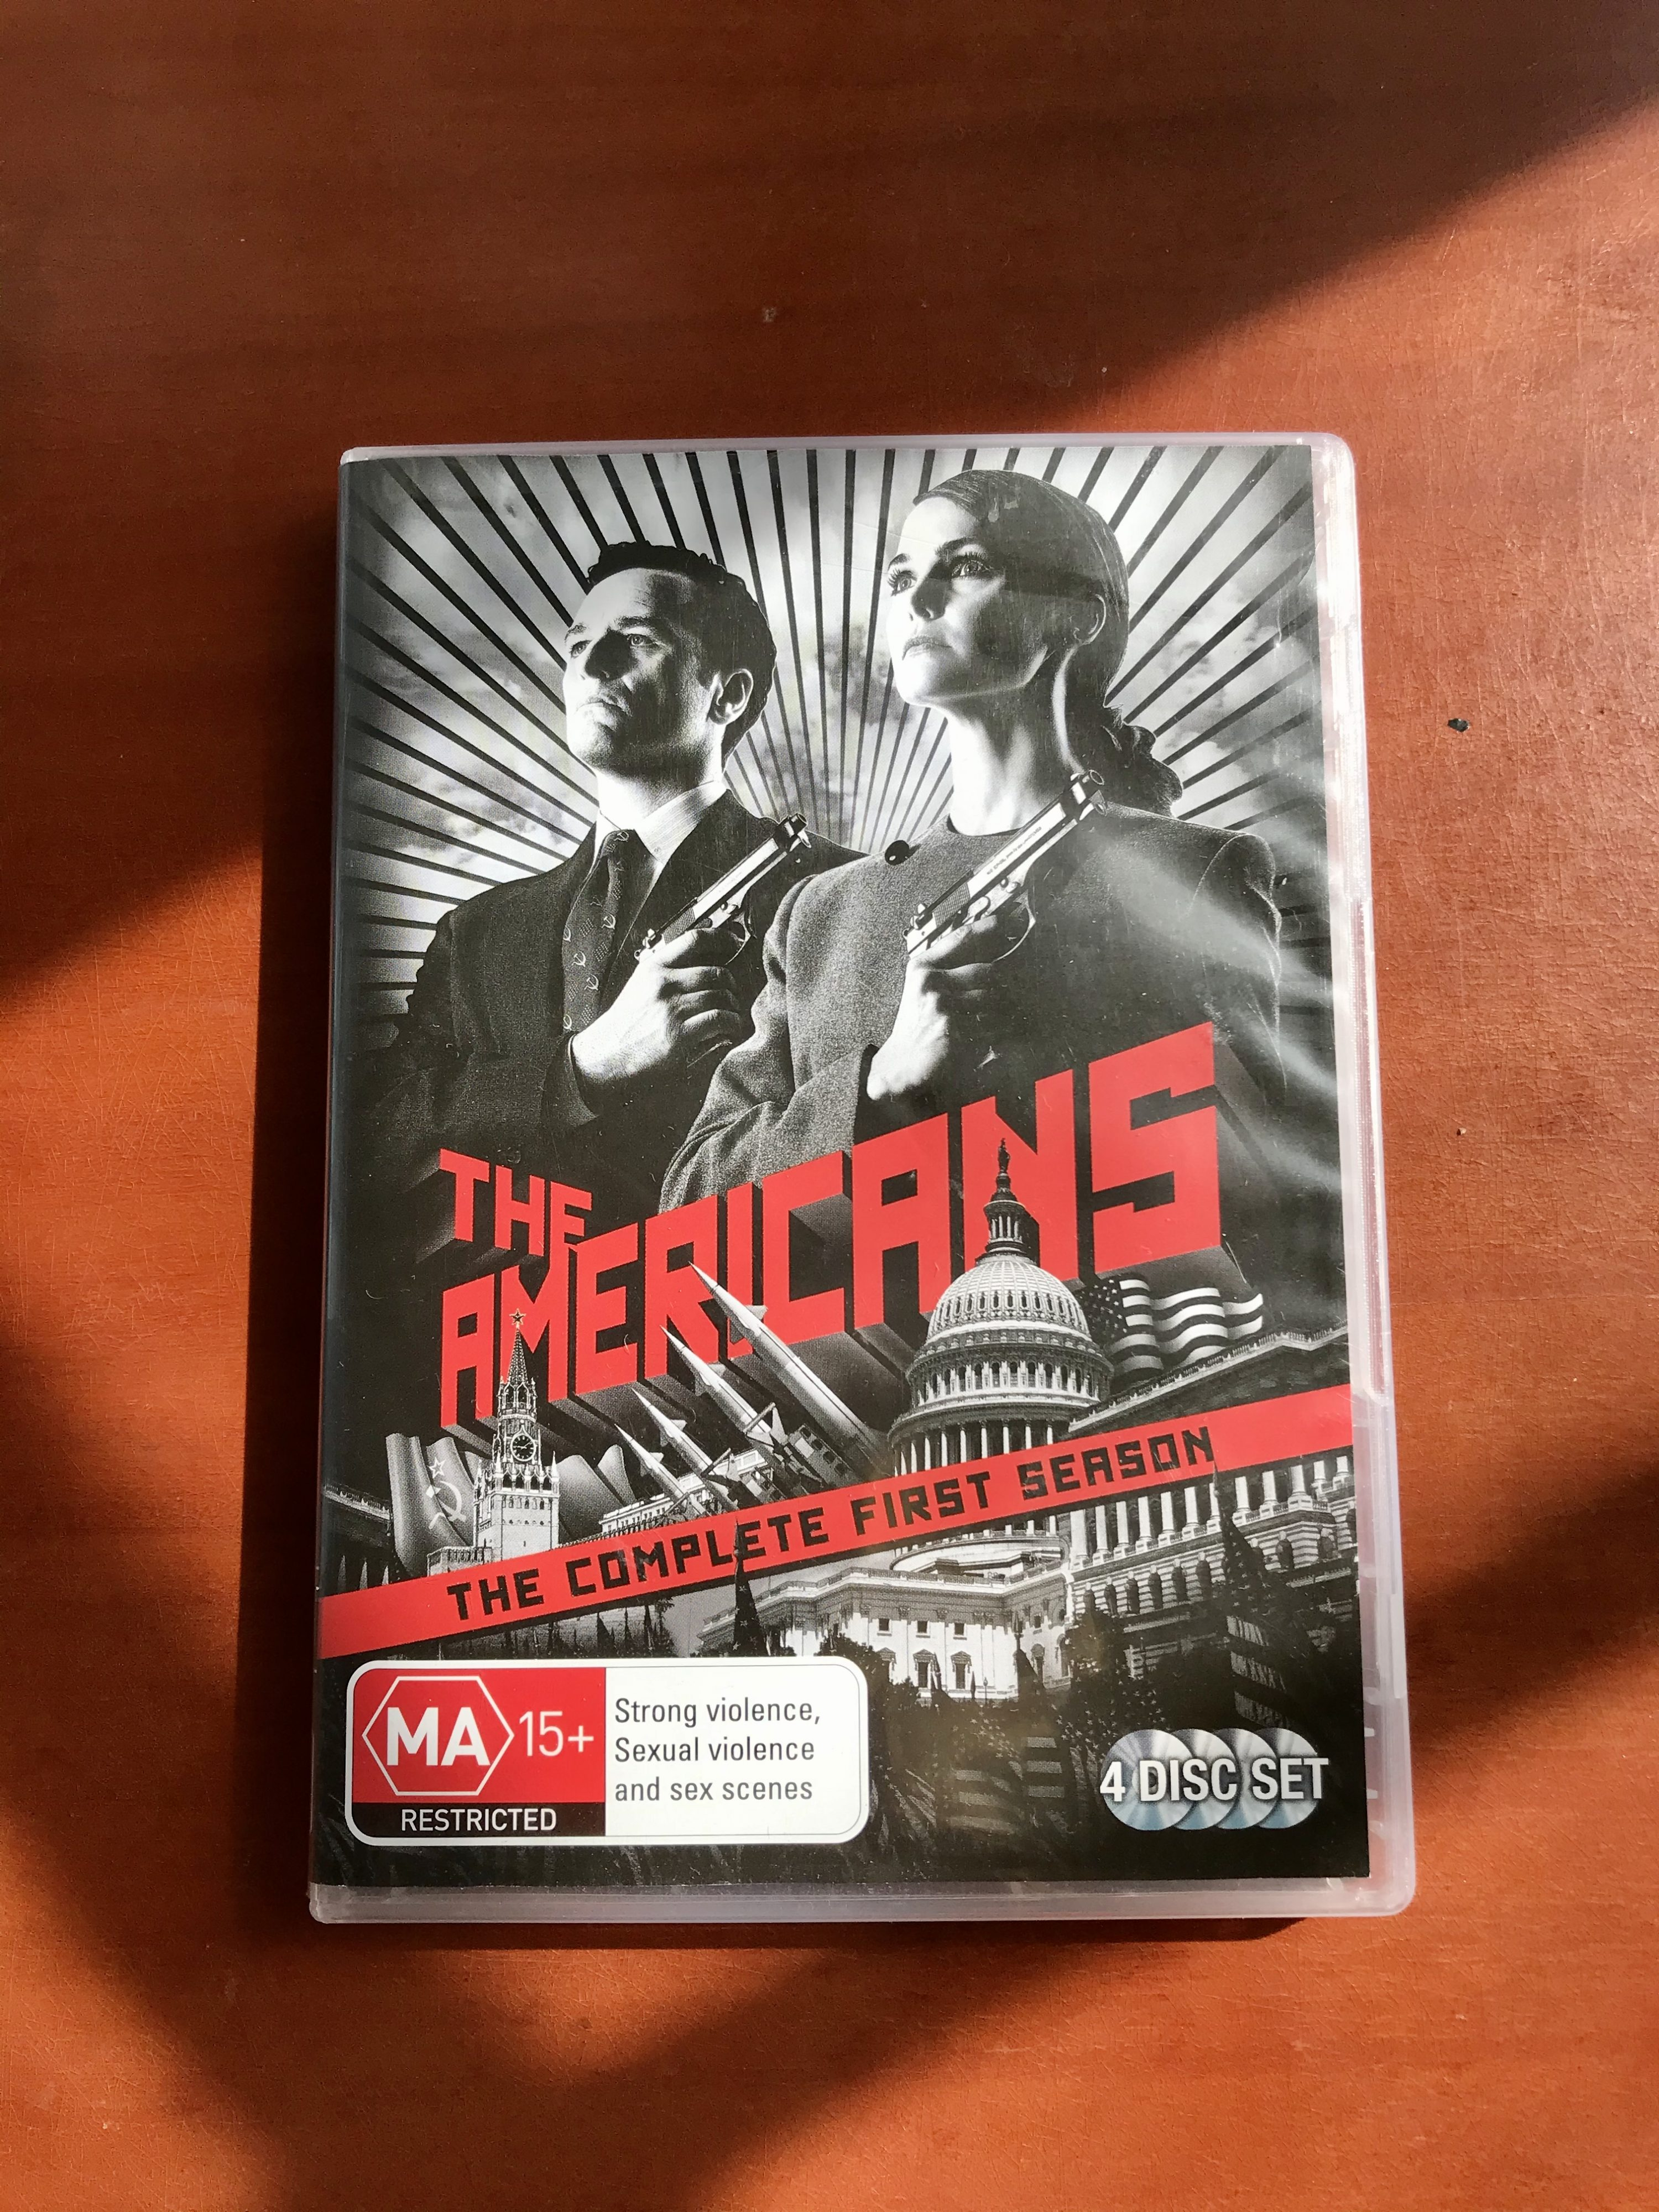 The DVD cover of The Americans Series One - the perfect companion for isolation